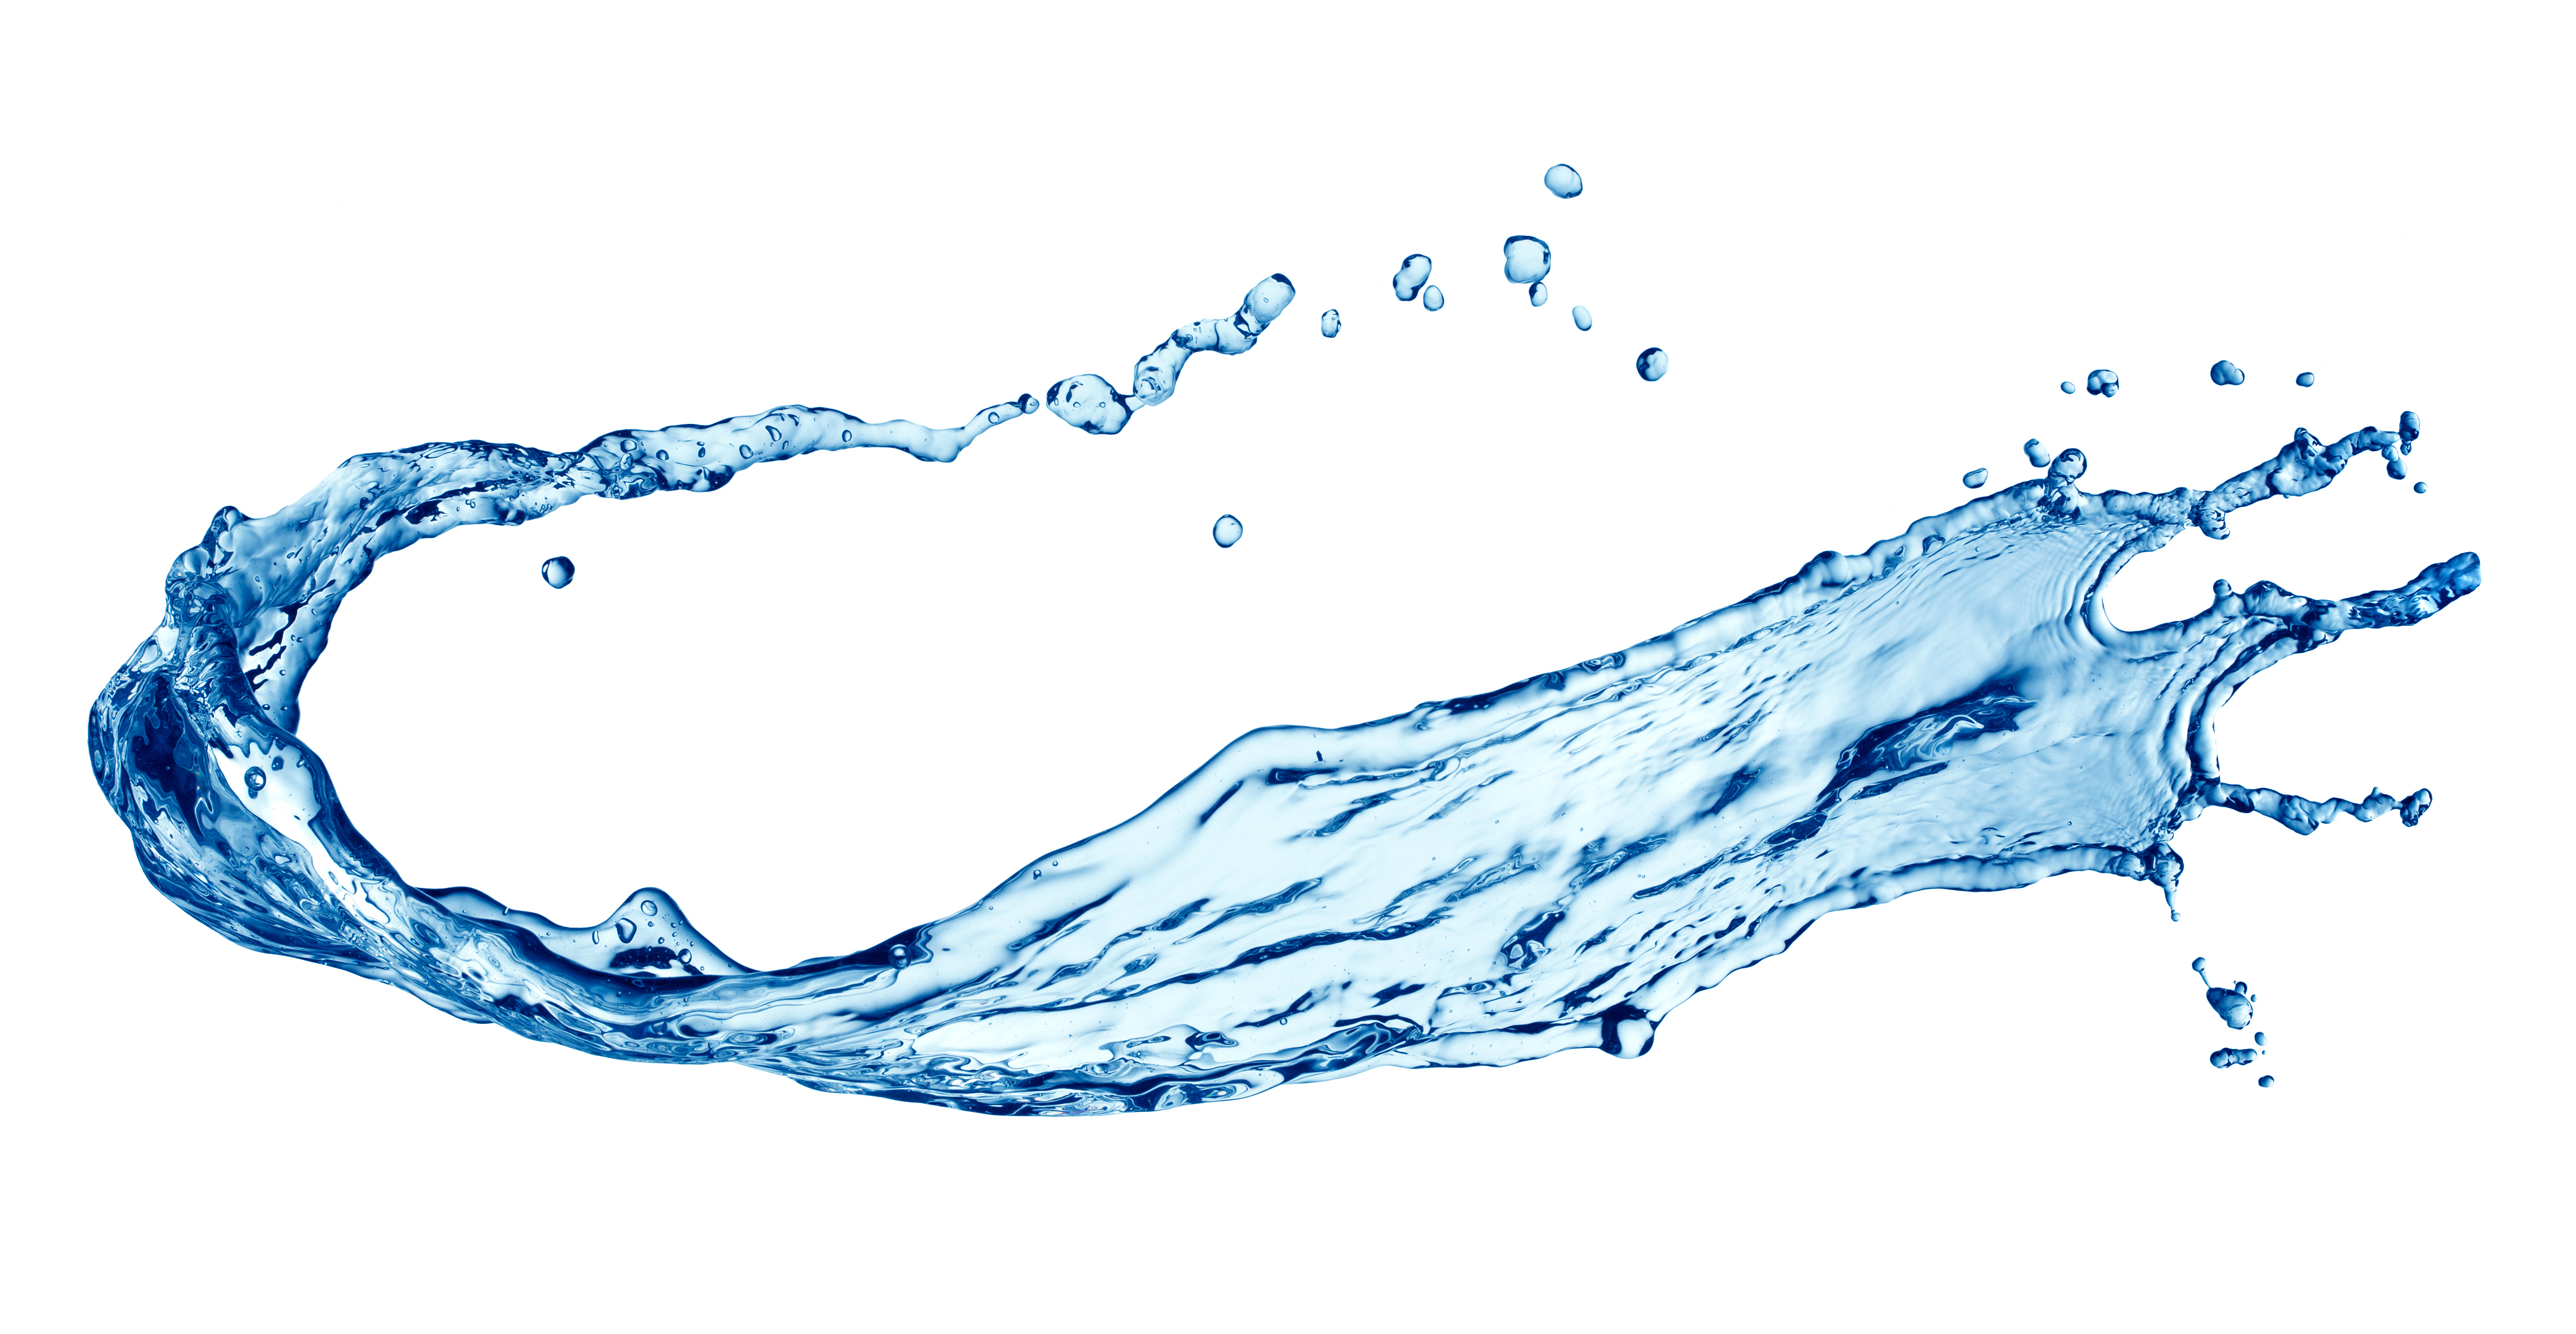 Water Png Image.